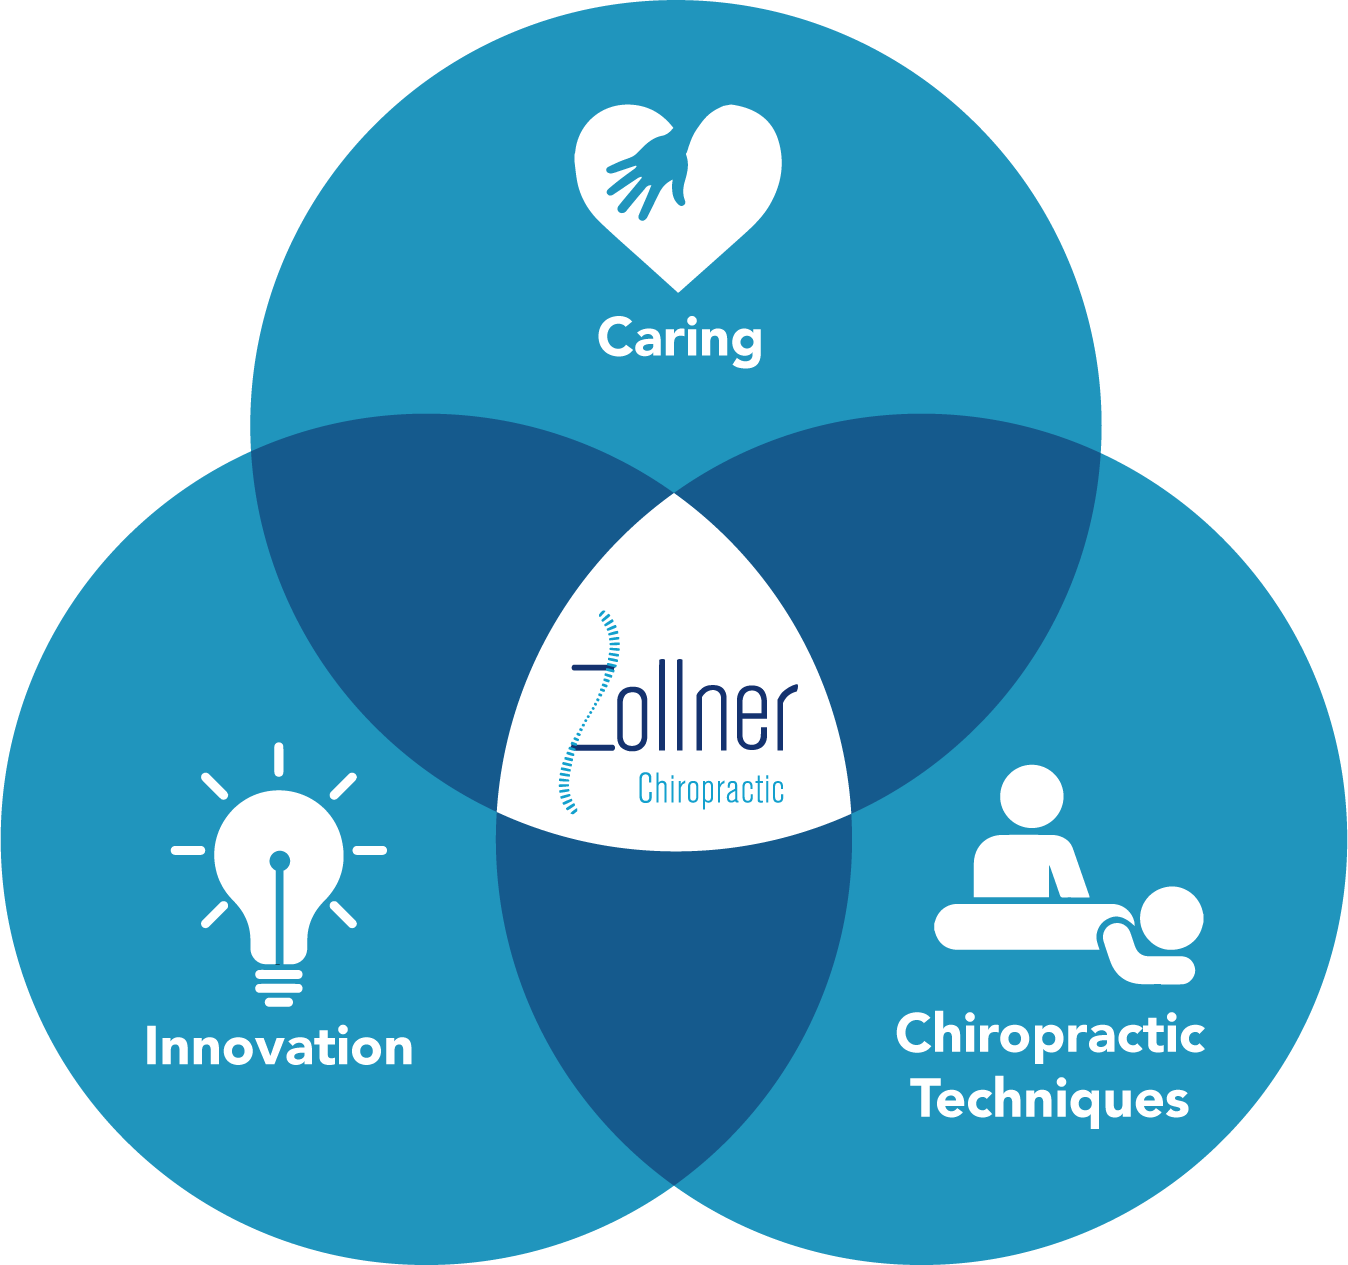 Caring Innovation Chiropractic Techniques